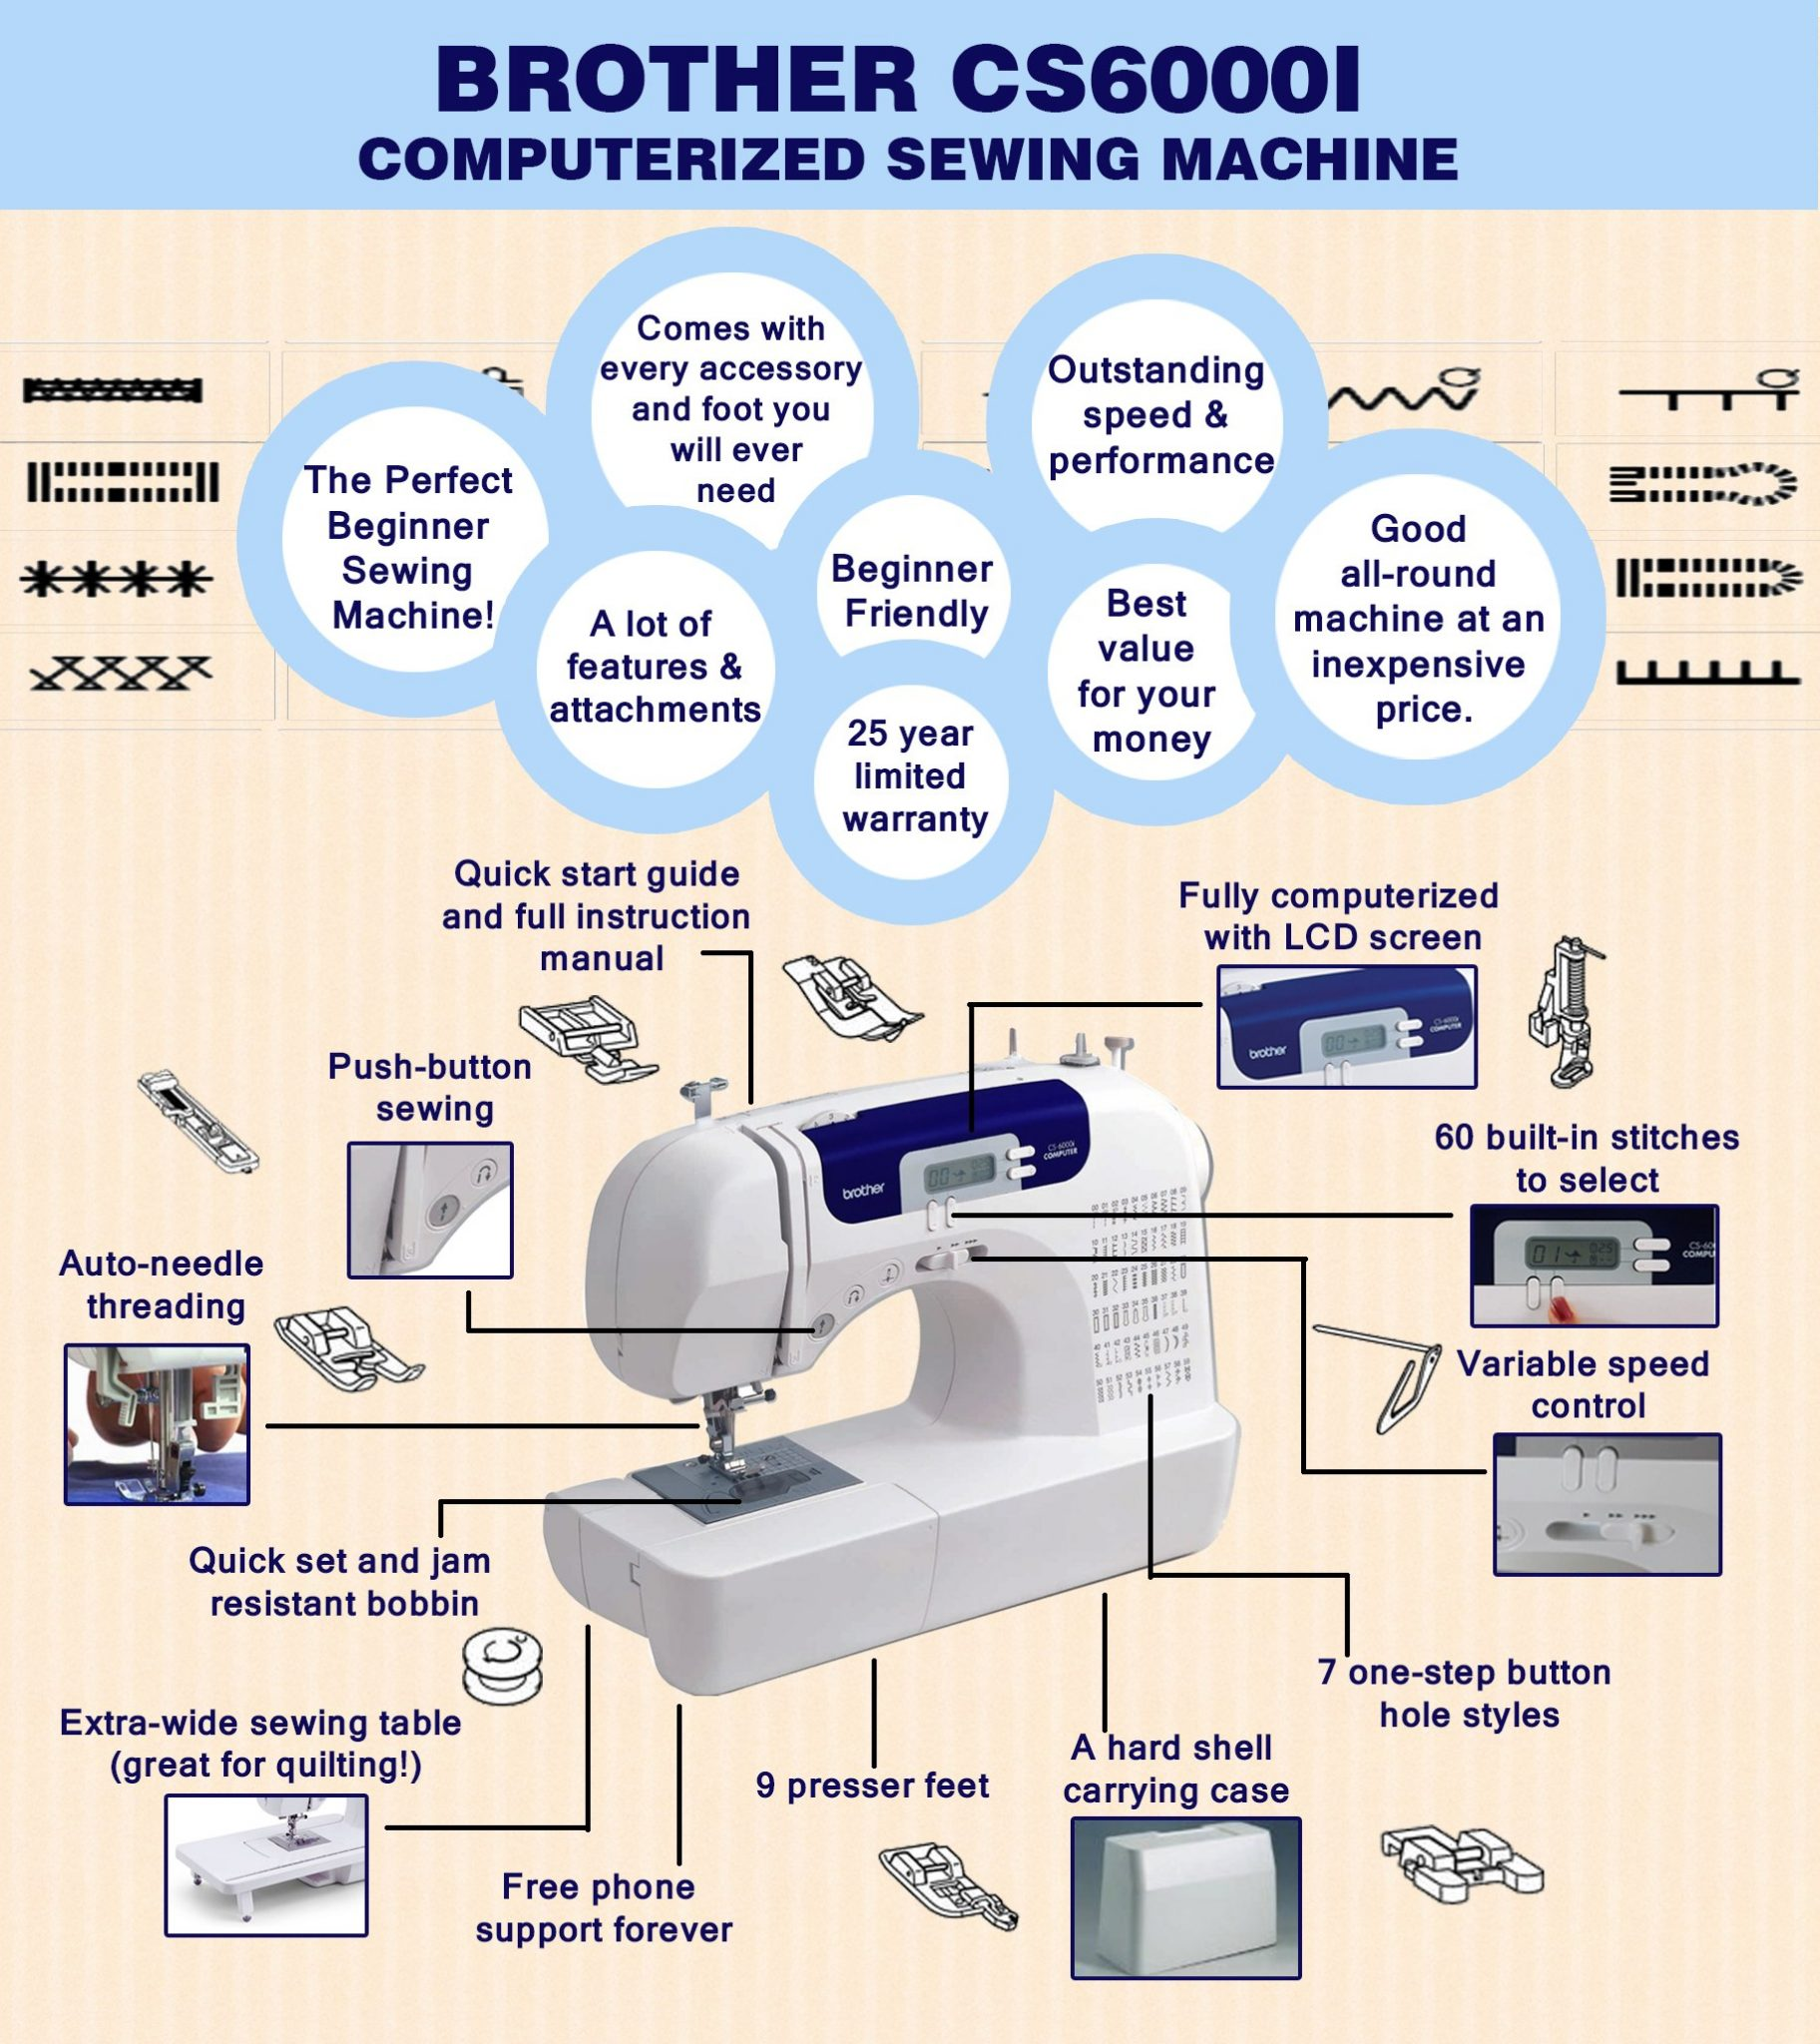 Brother CS6000i infographic